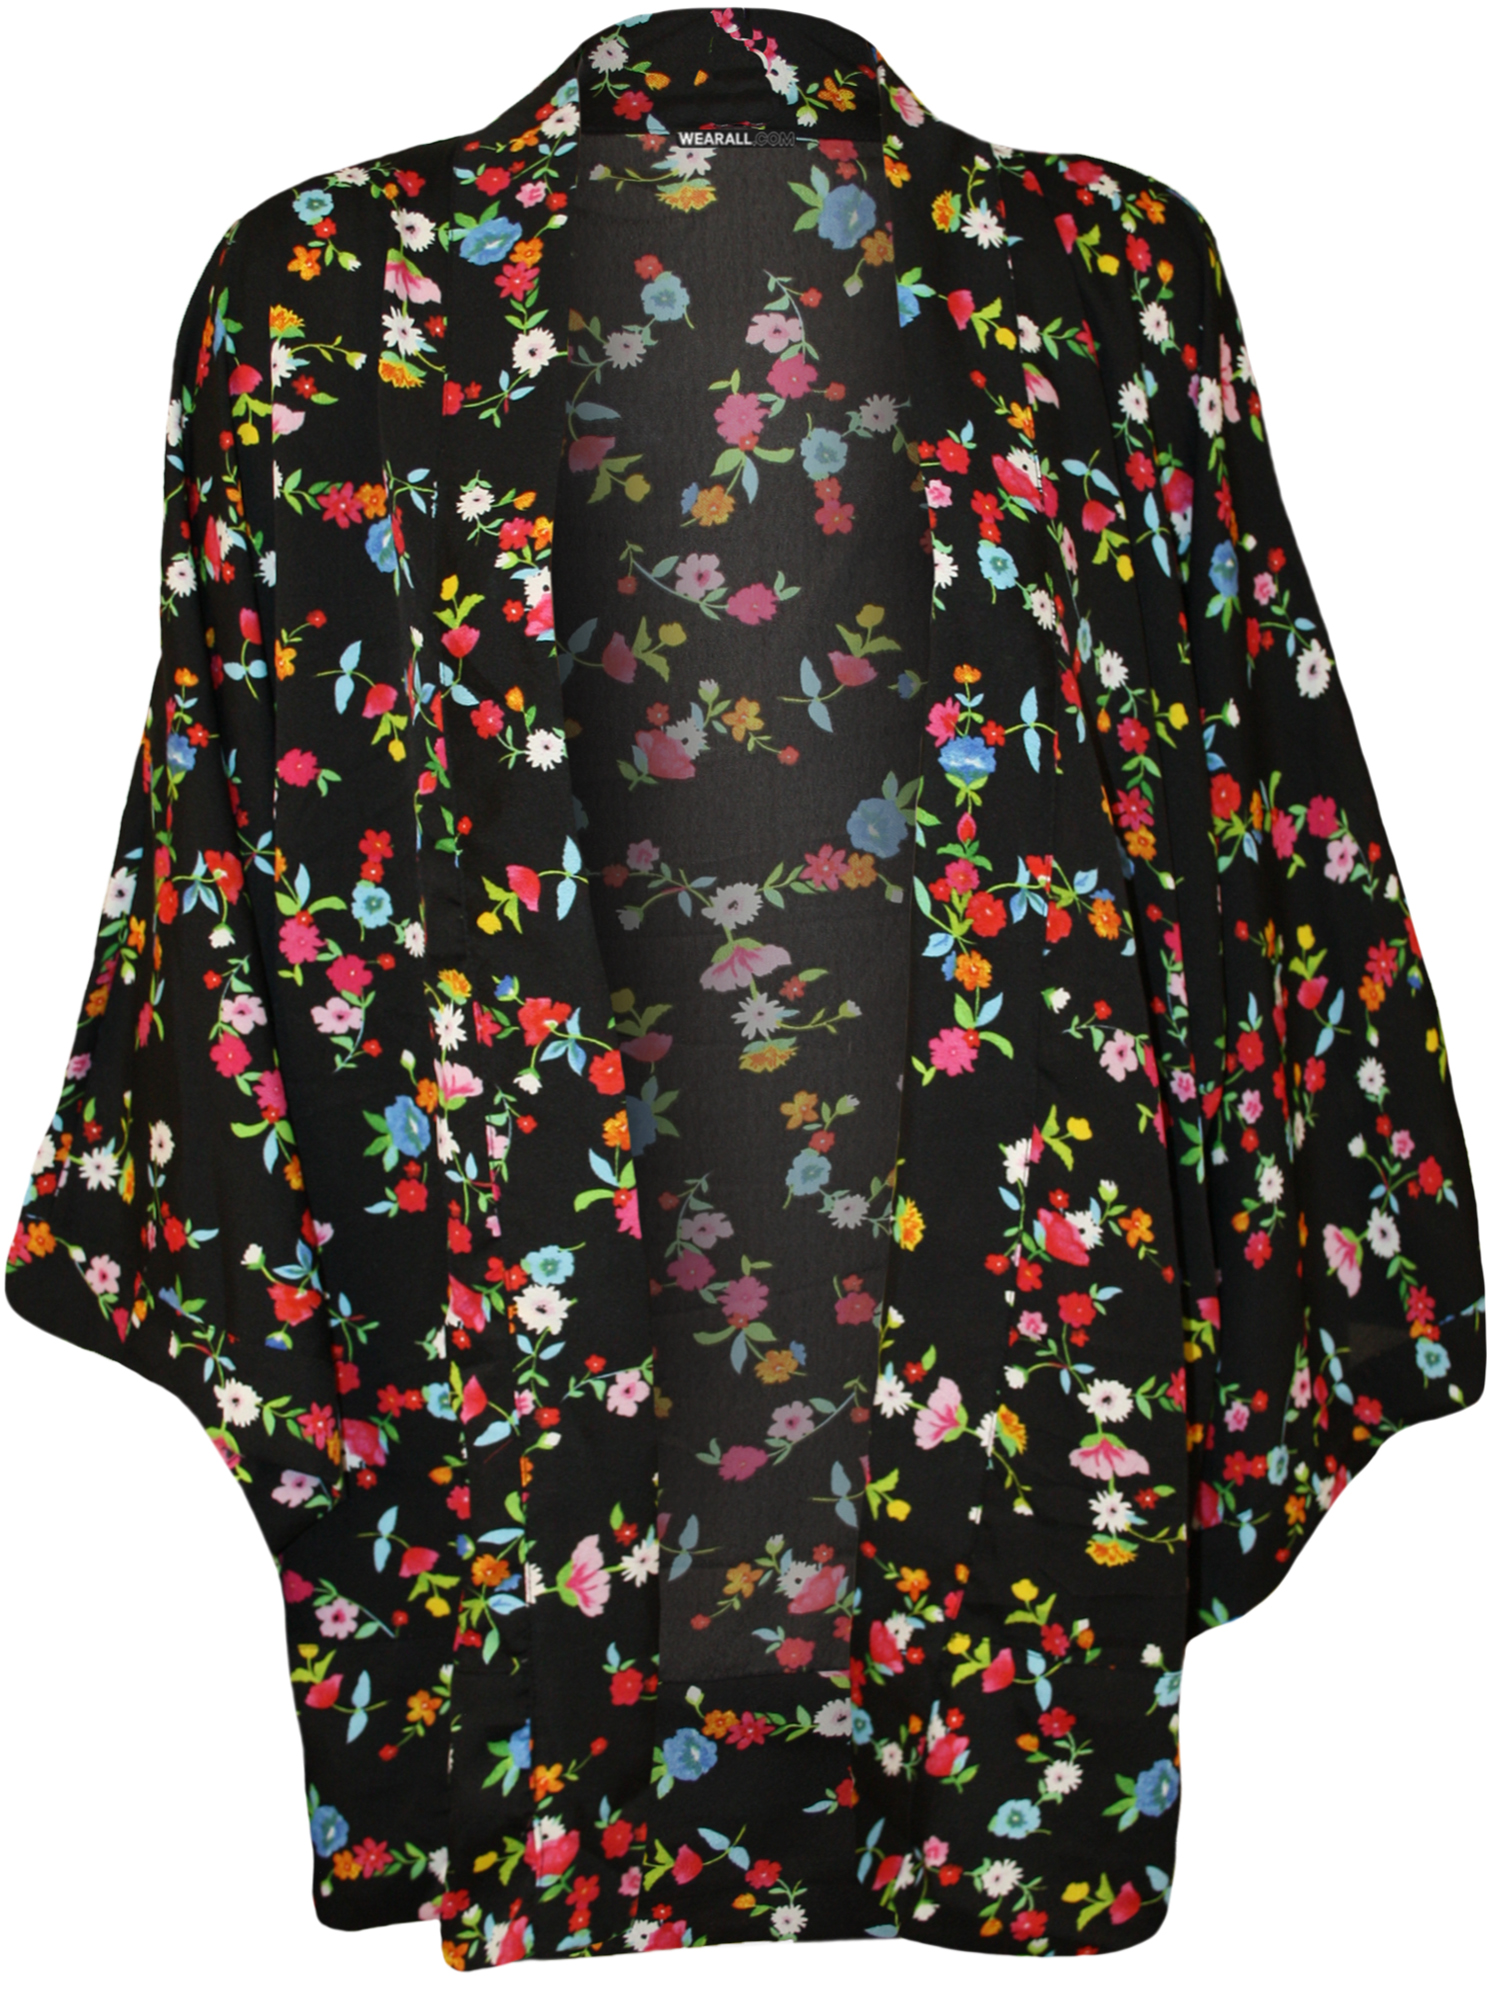 Find women floral jacket at ShopStyle. Shop the latest collection of women floral jacket from the most popular stores - all in one place.